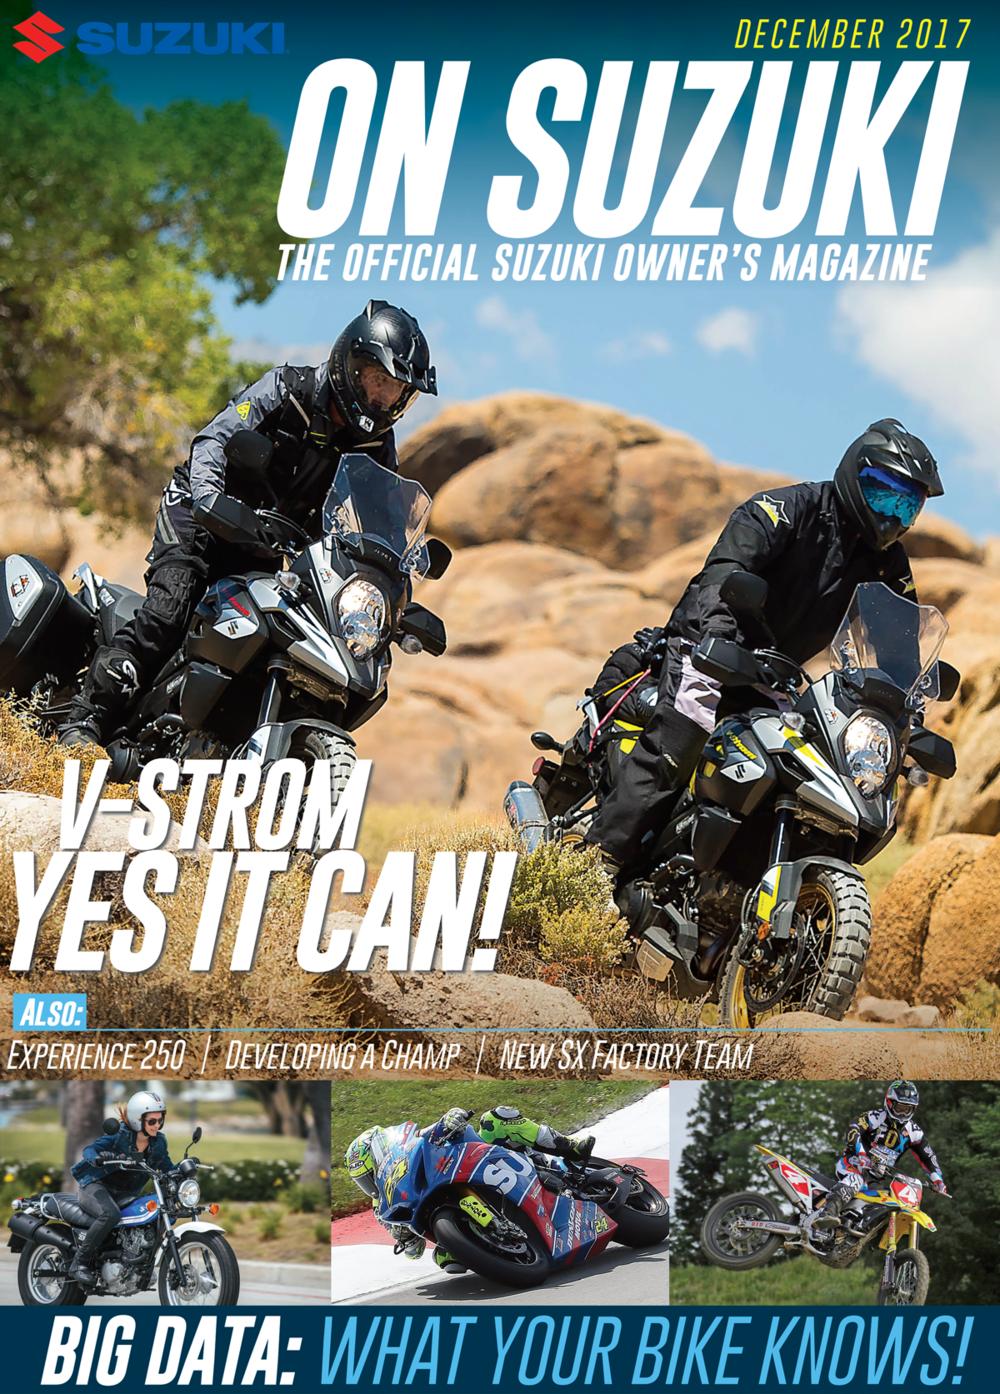 December 2017 issue of On Suzuki magazine